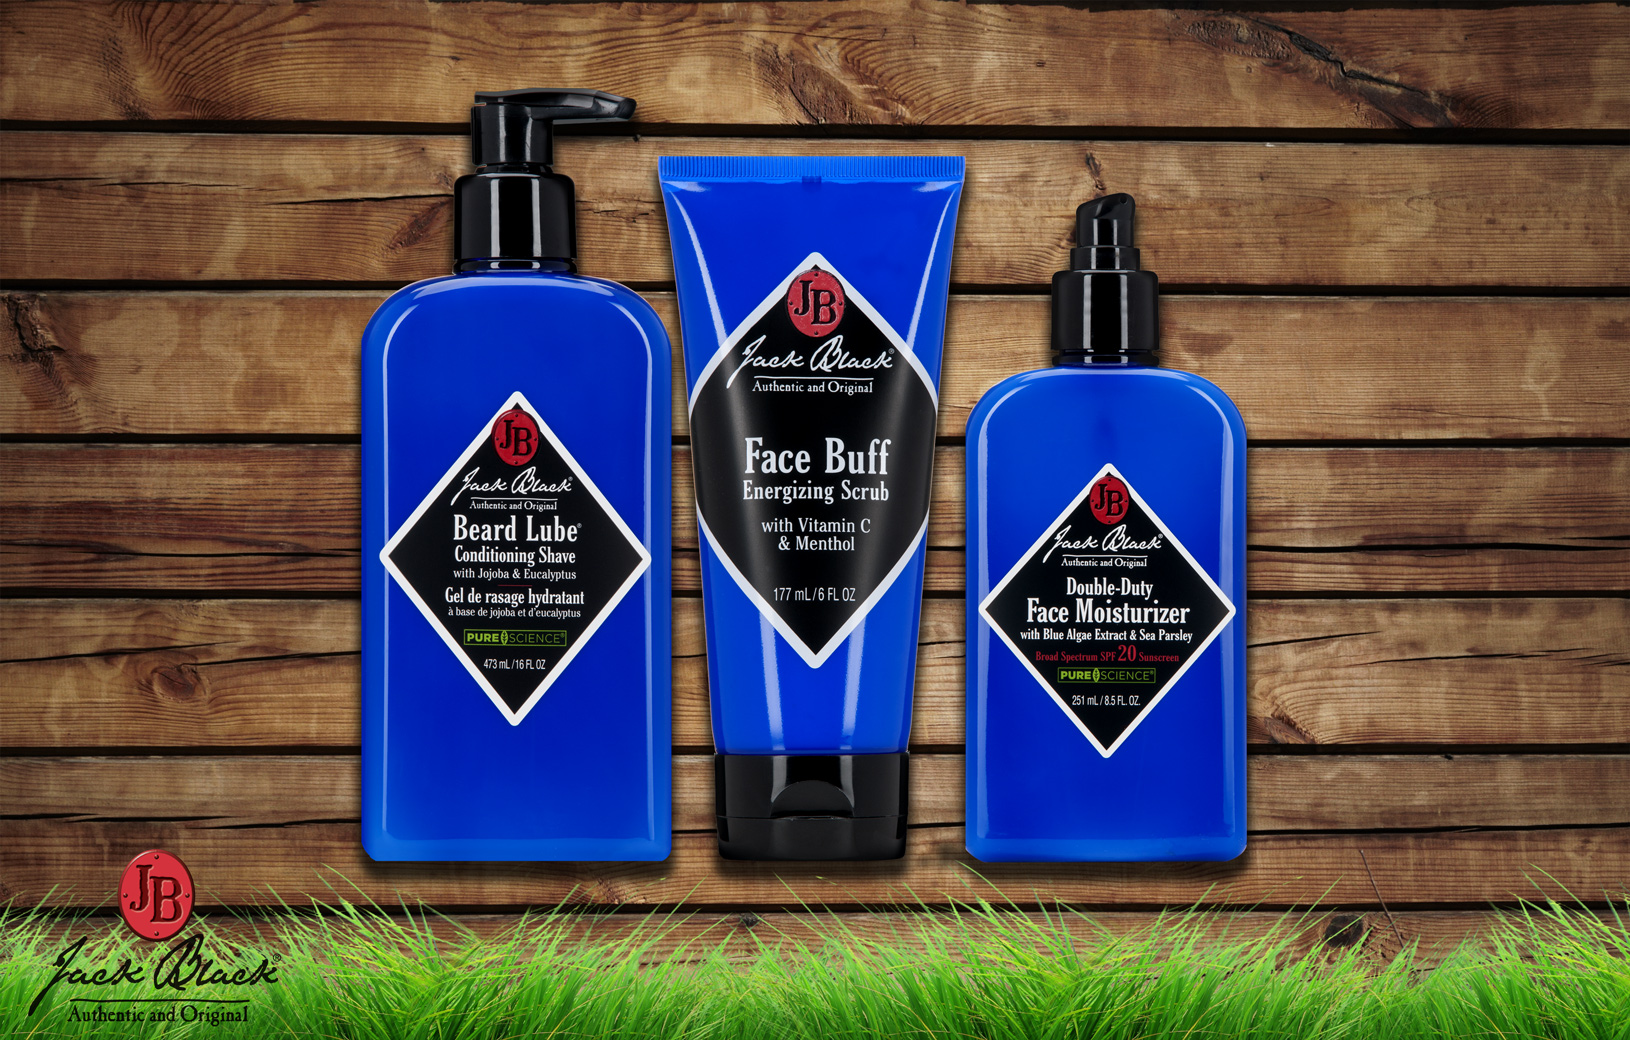 Brand Banner for Dermstore featuring Jack Black products